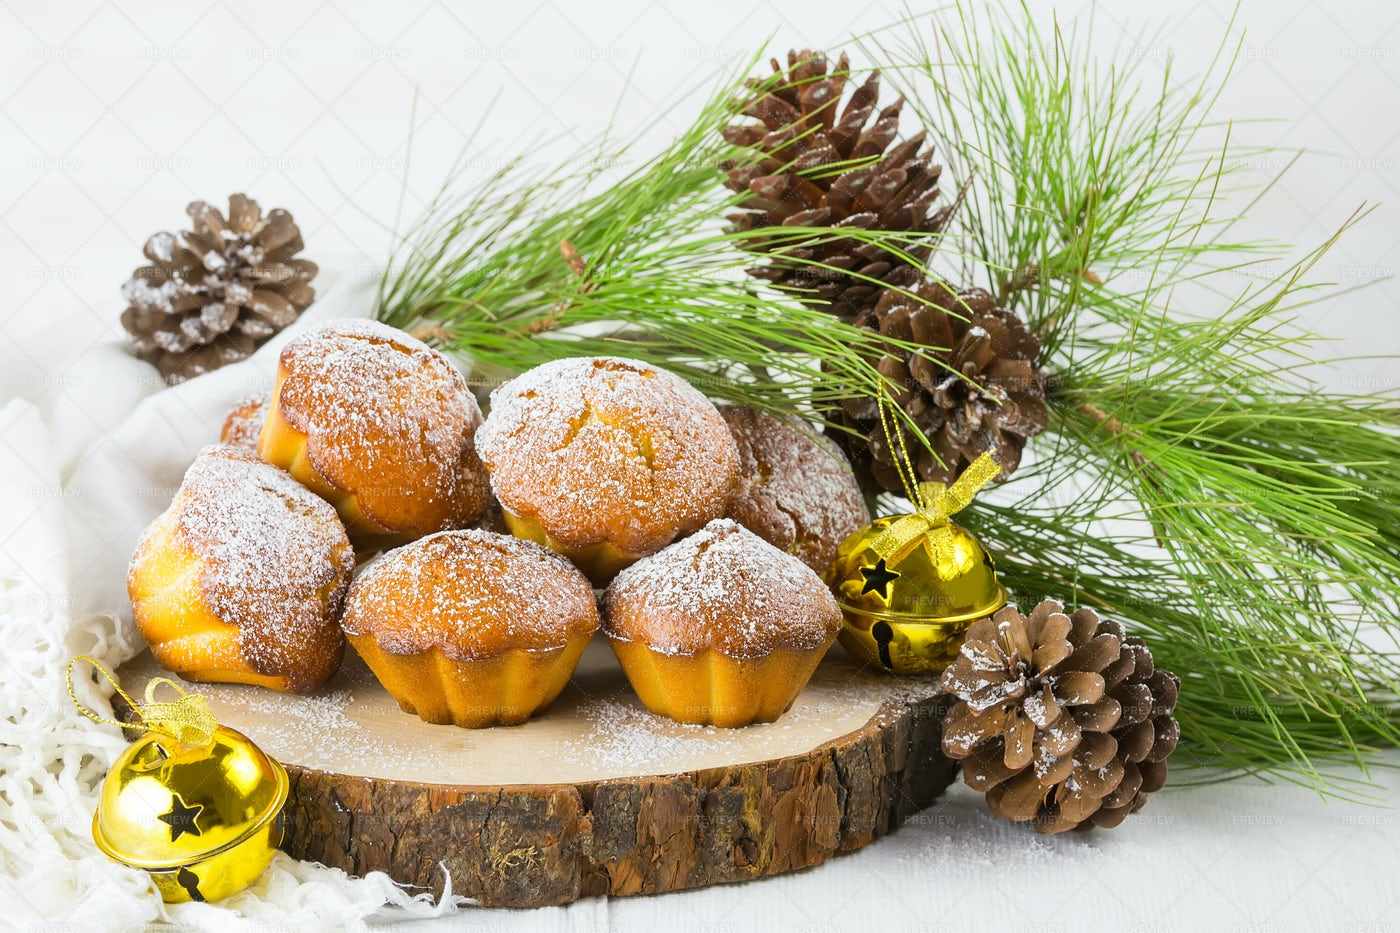 Christmas Muffins In Holiday Setting: Stock Photos